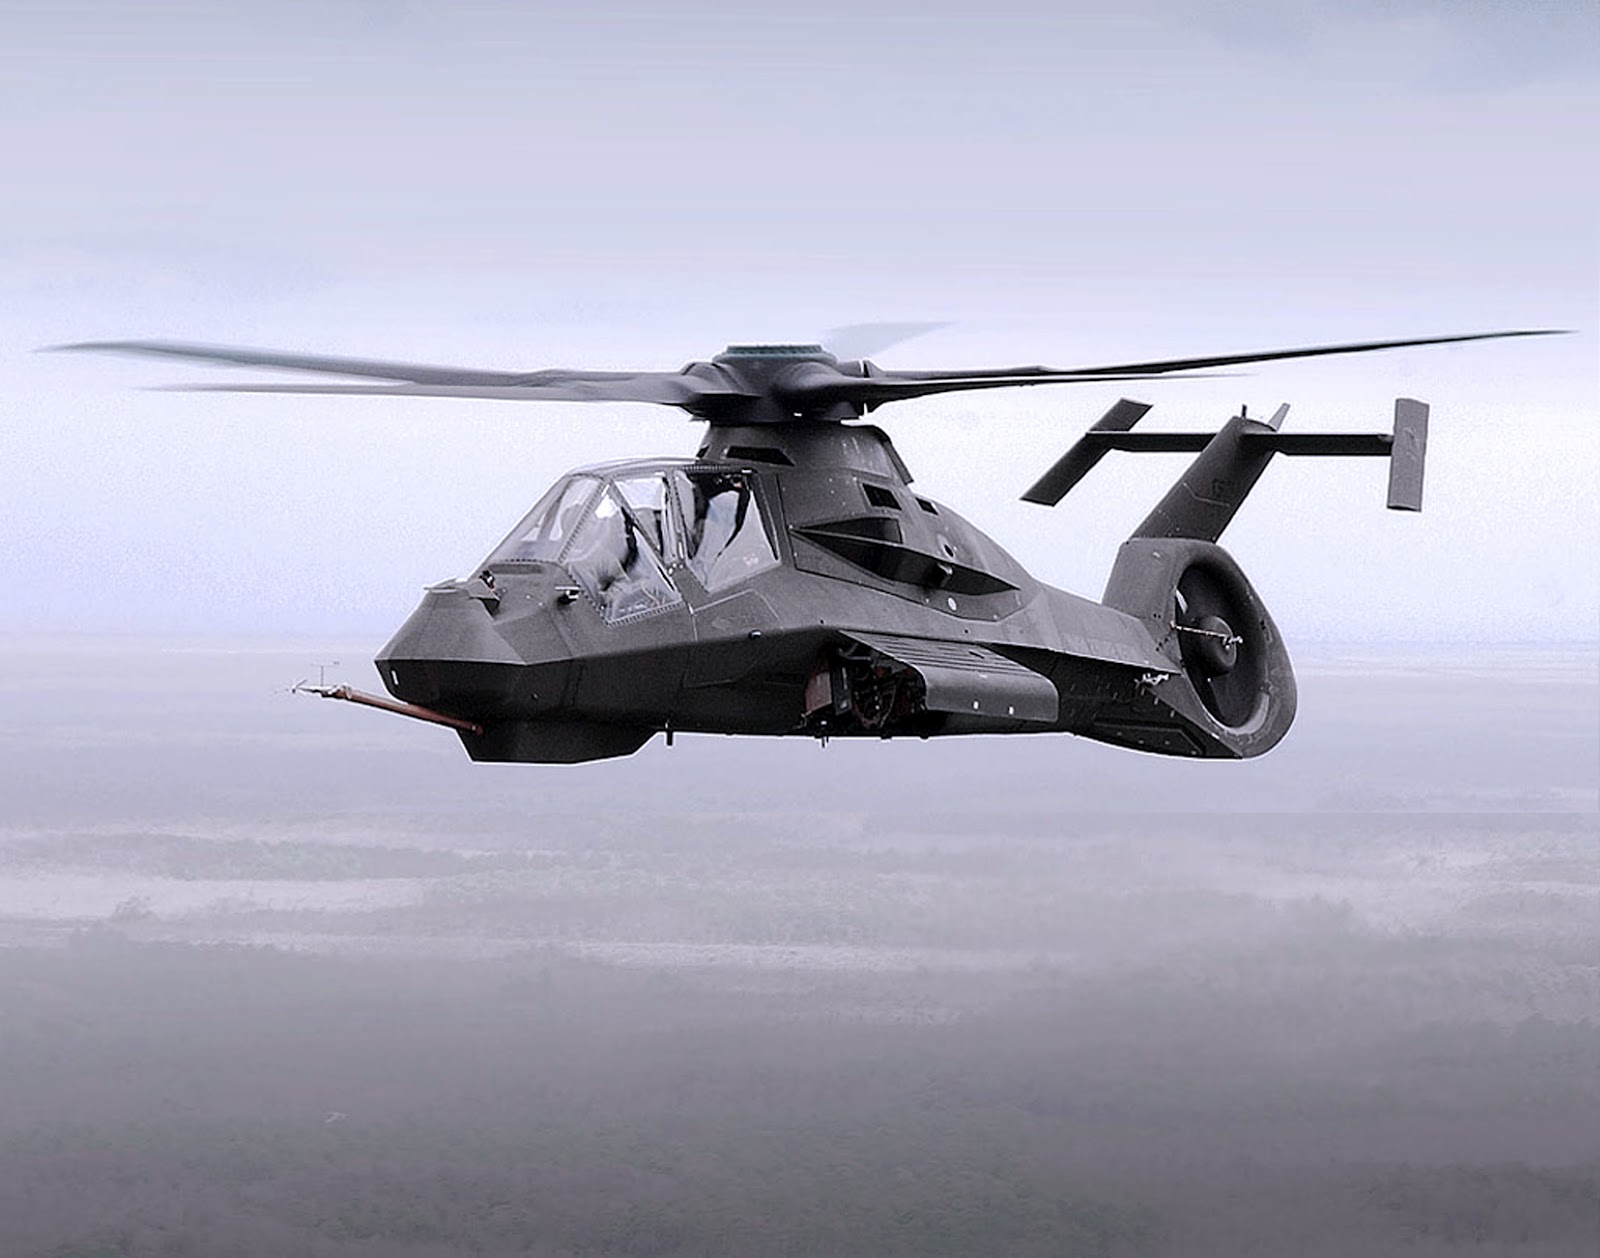 how much does helicopter cost with How Much Does An Airstrike Cost 1657 X 1900 on Model Helicopters Remote Control in addition Bergamini Class Fremm Frigates Of besides Project management likewise How Much Does It Cost To Buy A Flight Simulator besides Helicopter Seeds.